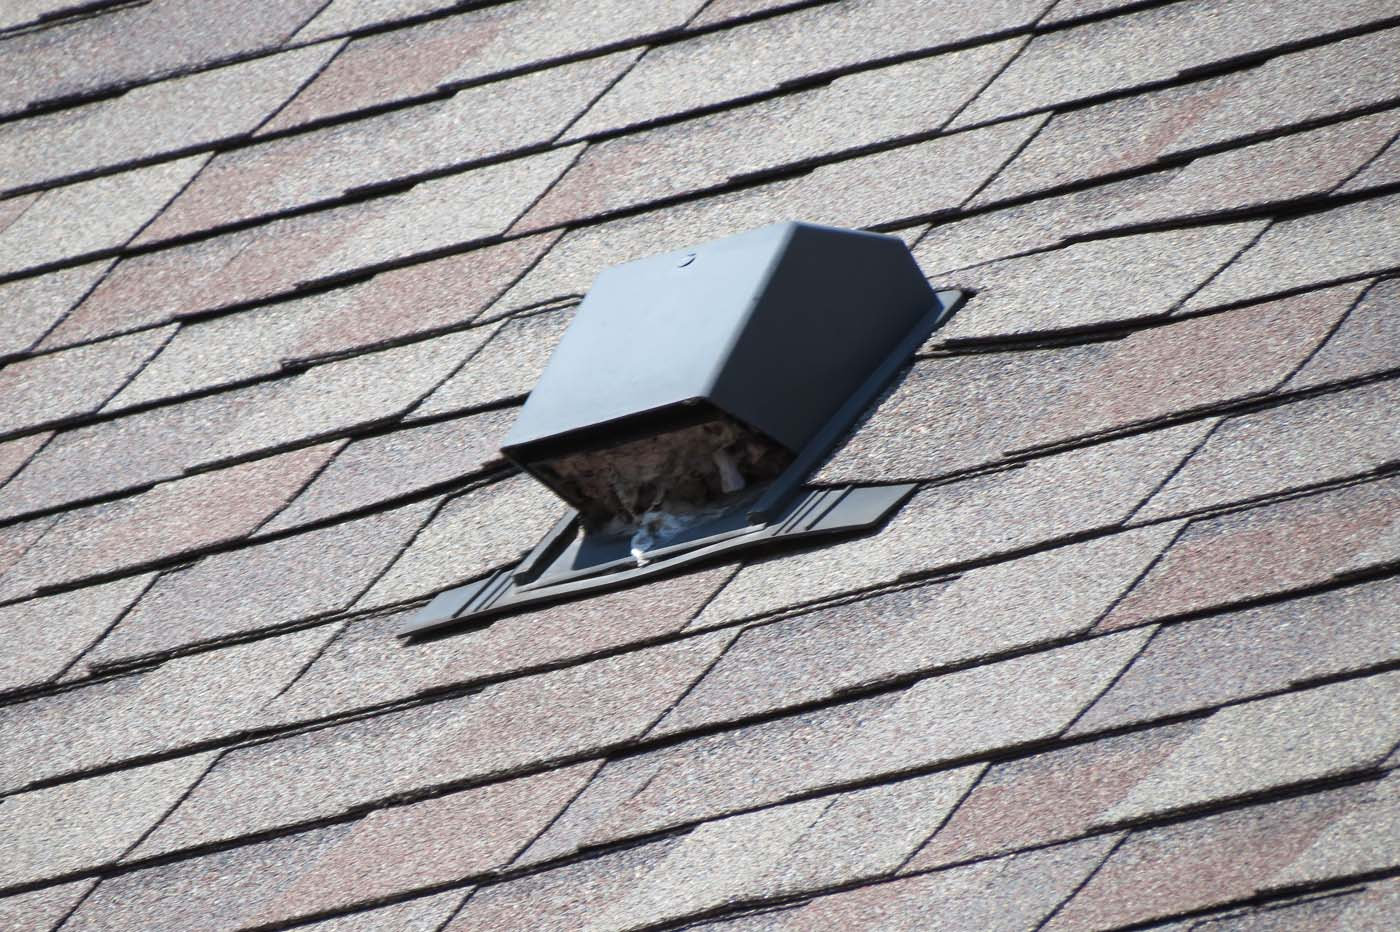 Dryer vent cleaning rooftop